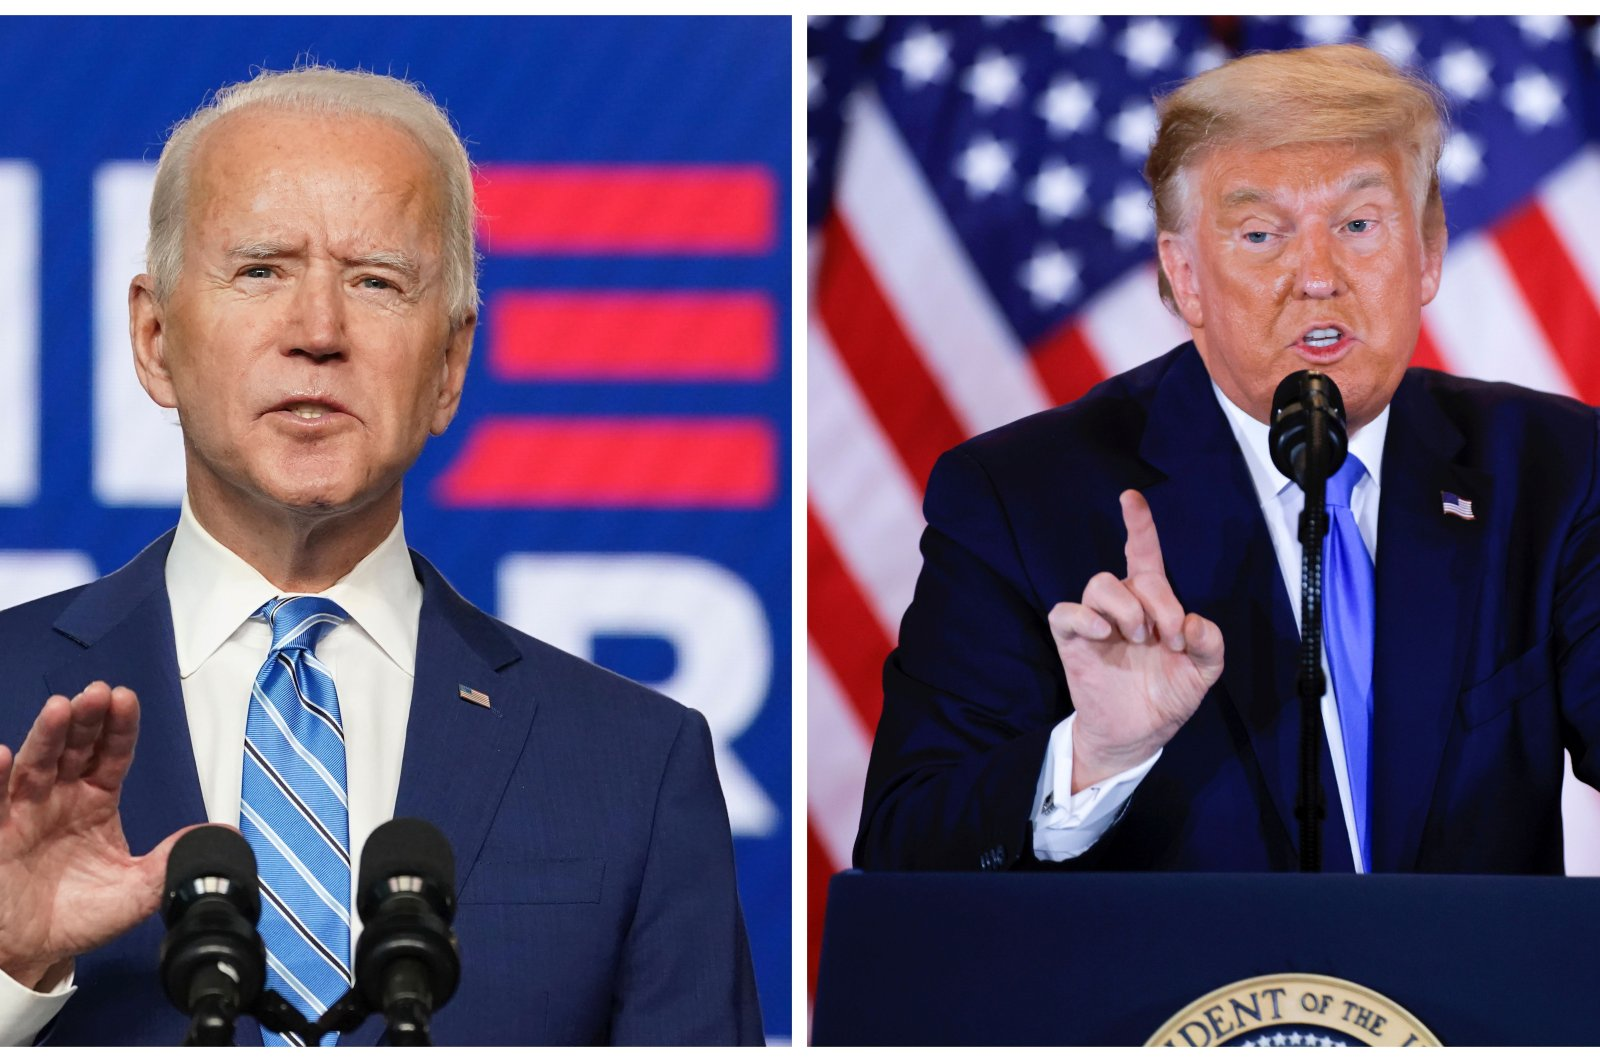 Combination picture of Democratic U.S. presidential nominee Joe Biden (L) and U.S. President Donald Trump speaking about the early results of the 2020 U.S. presidential election, Nov. 4, 2020. (Reuters Photo)